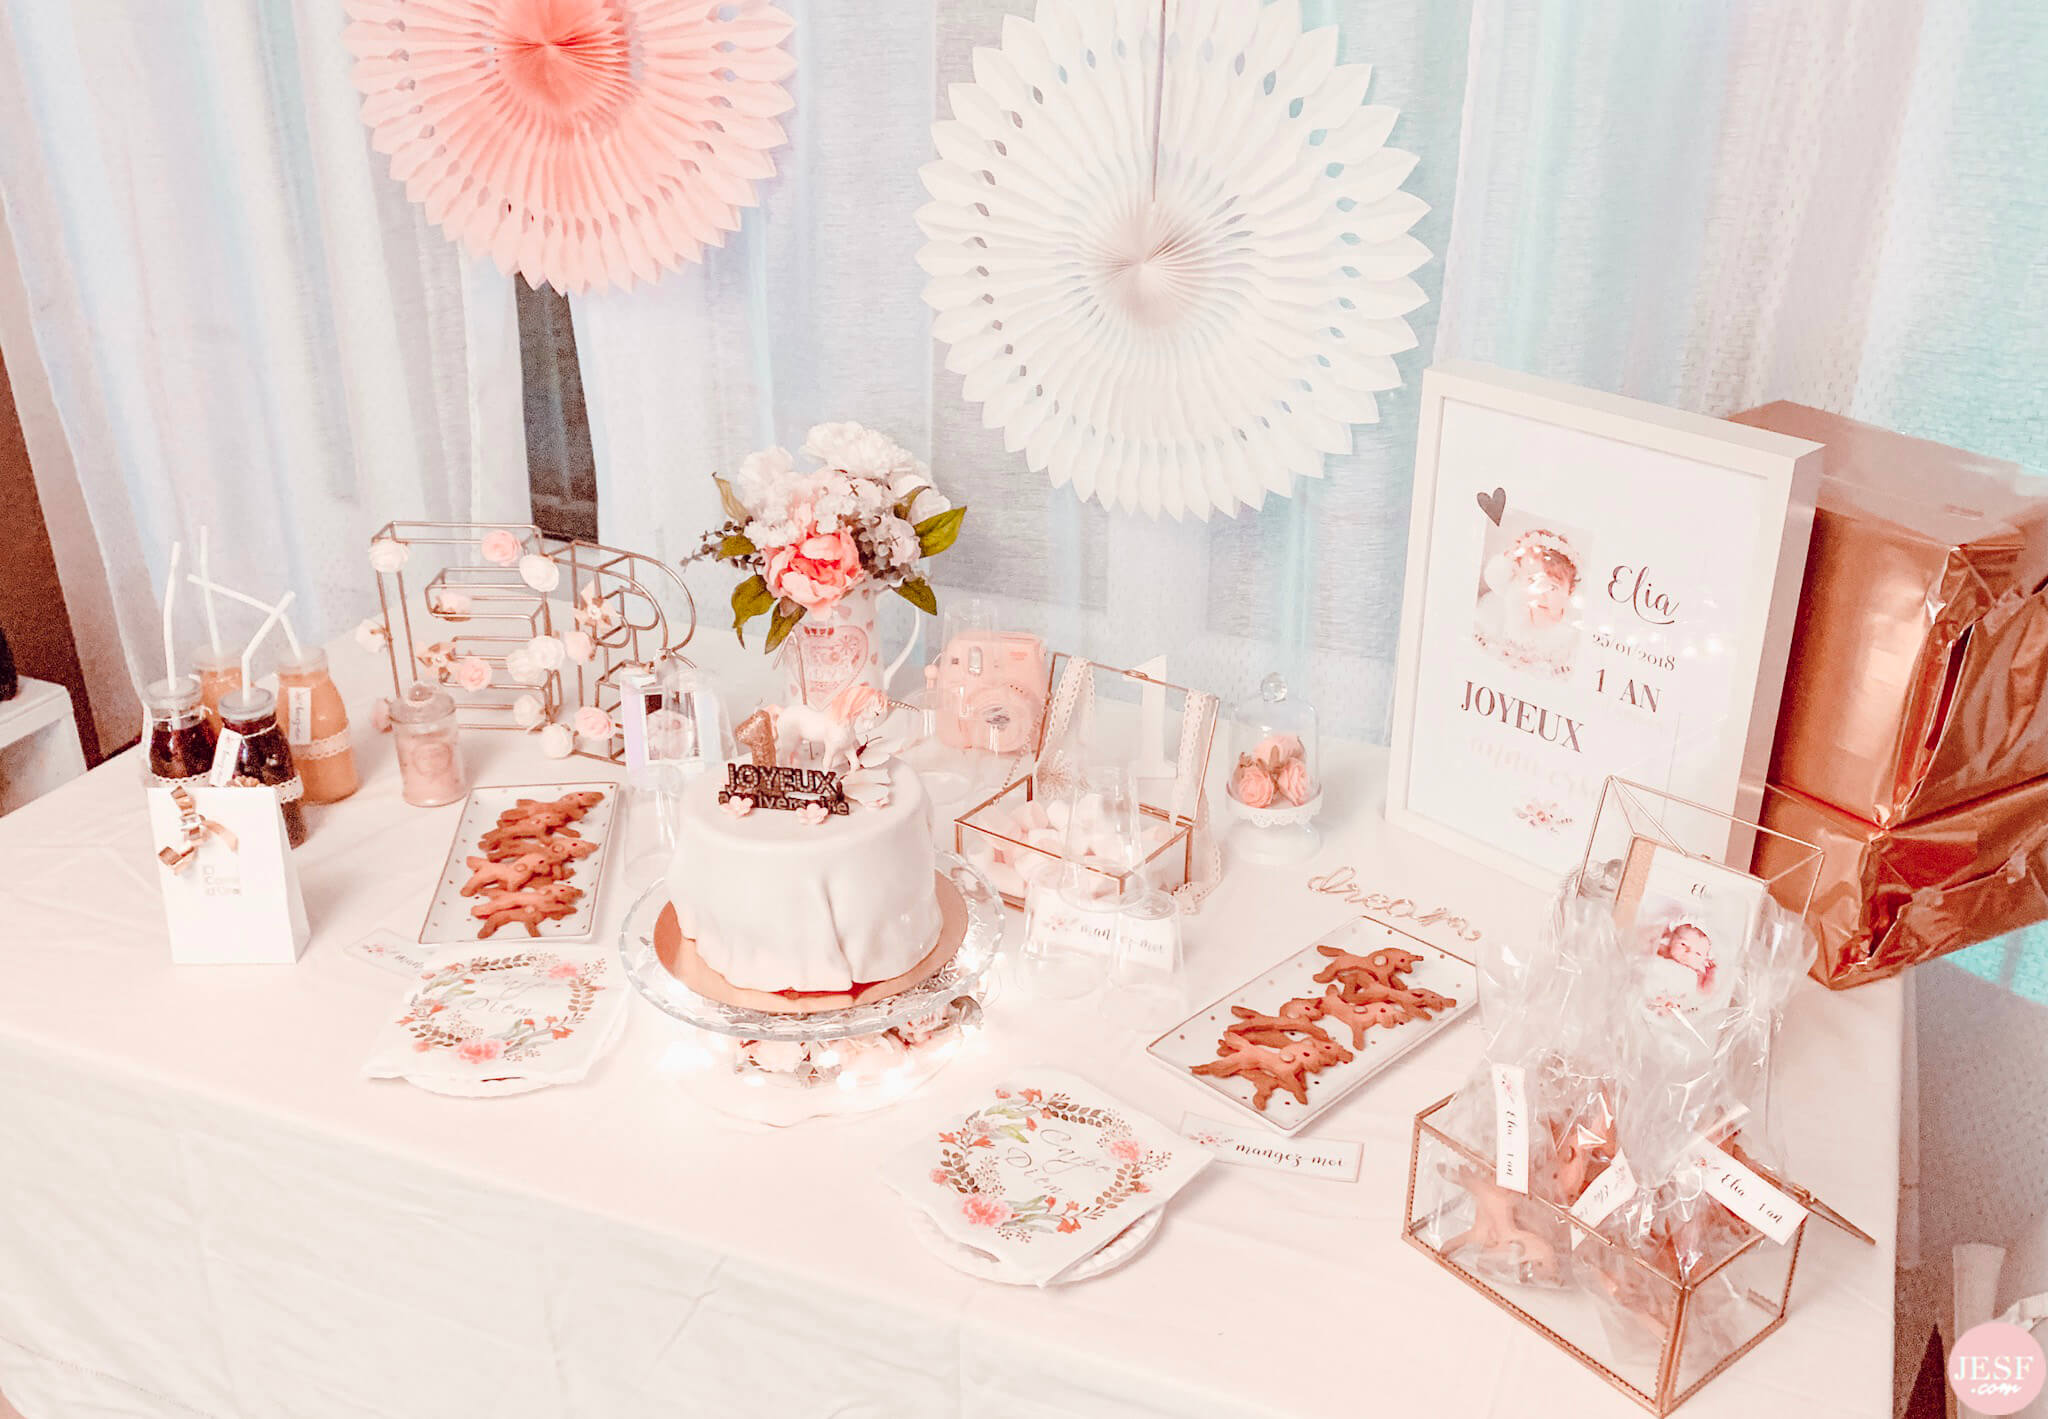 fête-anniversaire-sweet-table-petite-fille-1-an-girly-rose